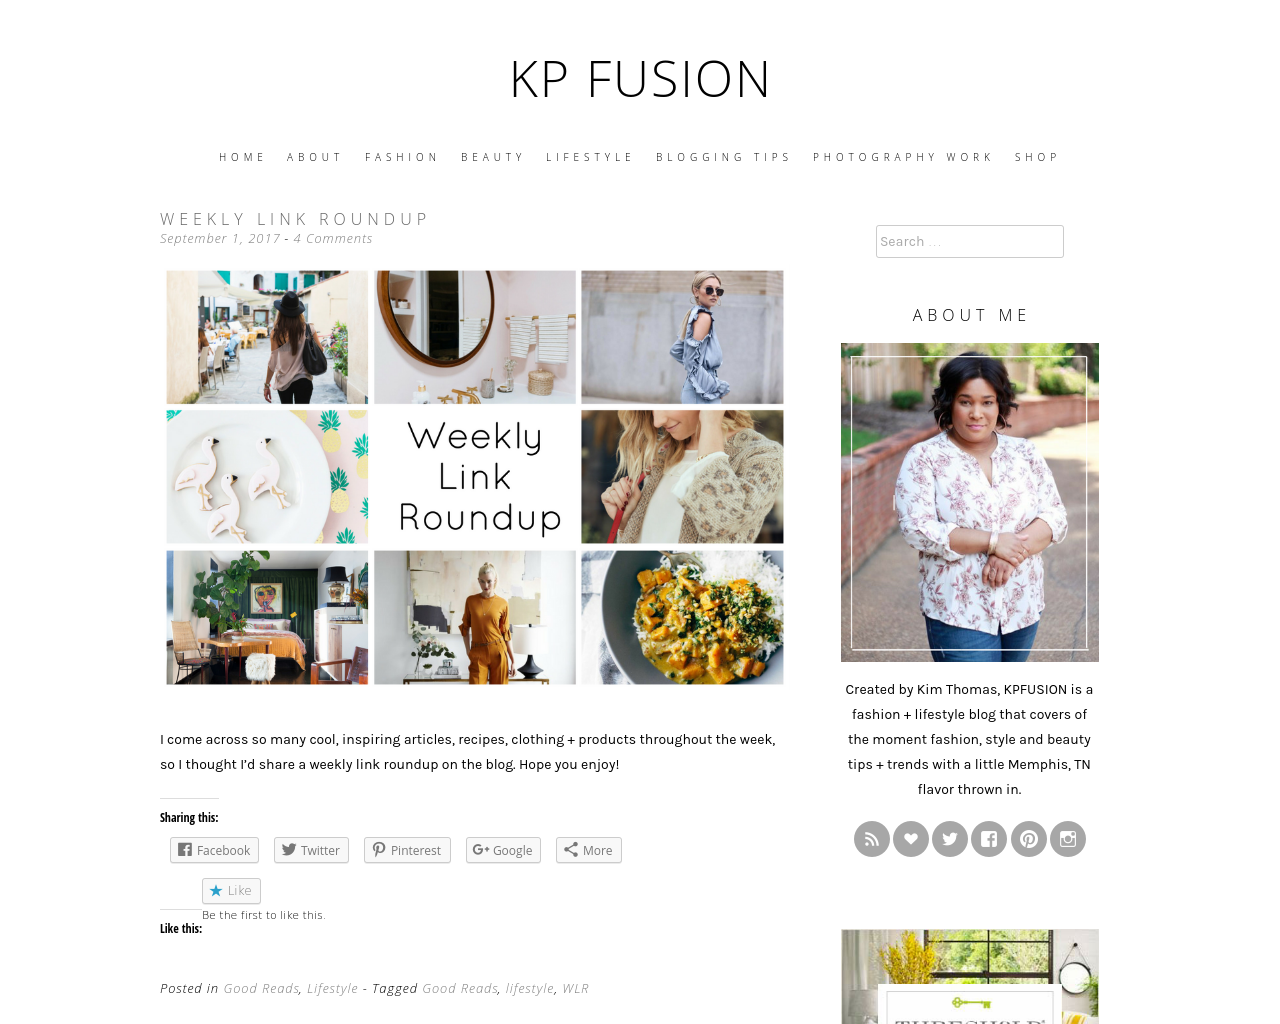 KP-Fusion-Advertising-Reviews-Pricing